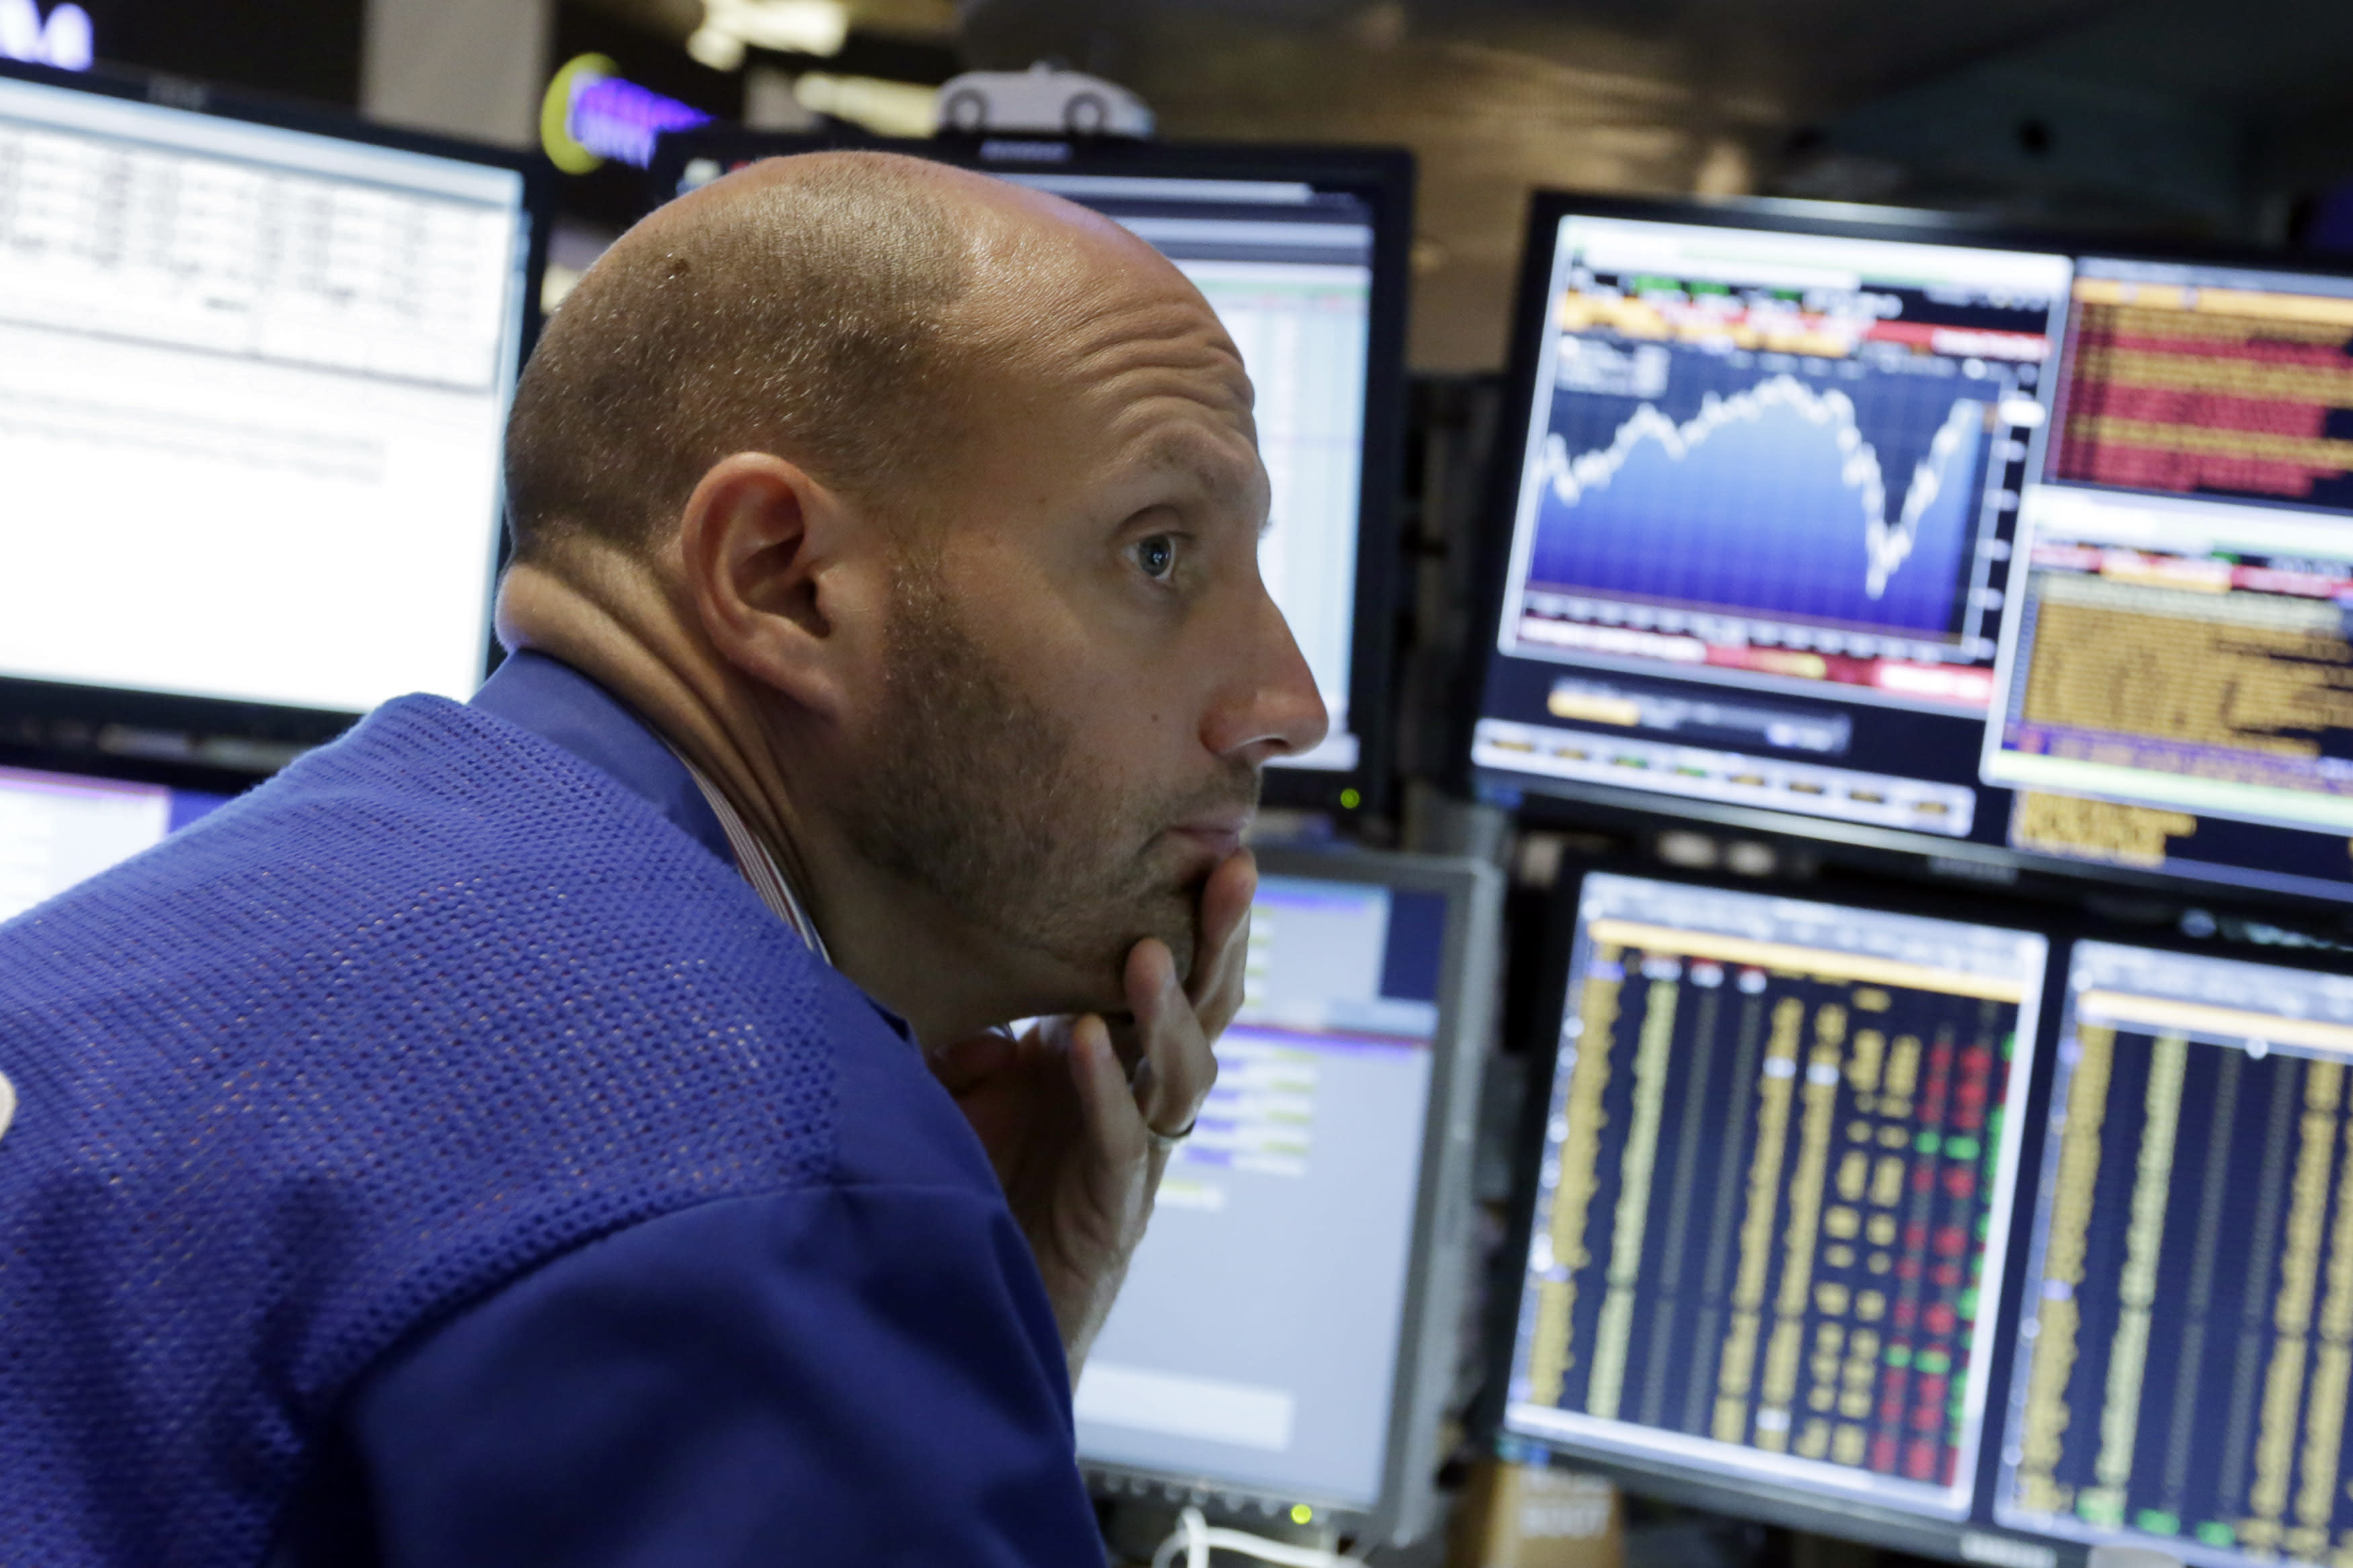 Calm on Wall Street: A turbulent week ends on a placid note